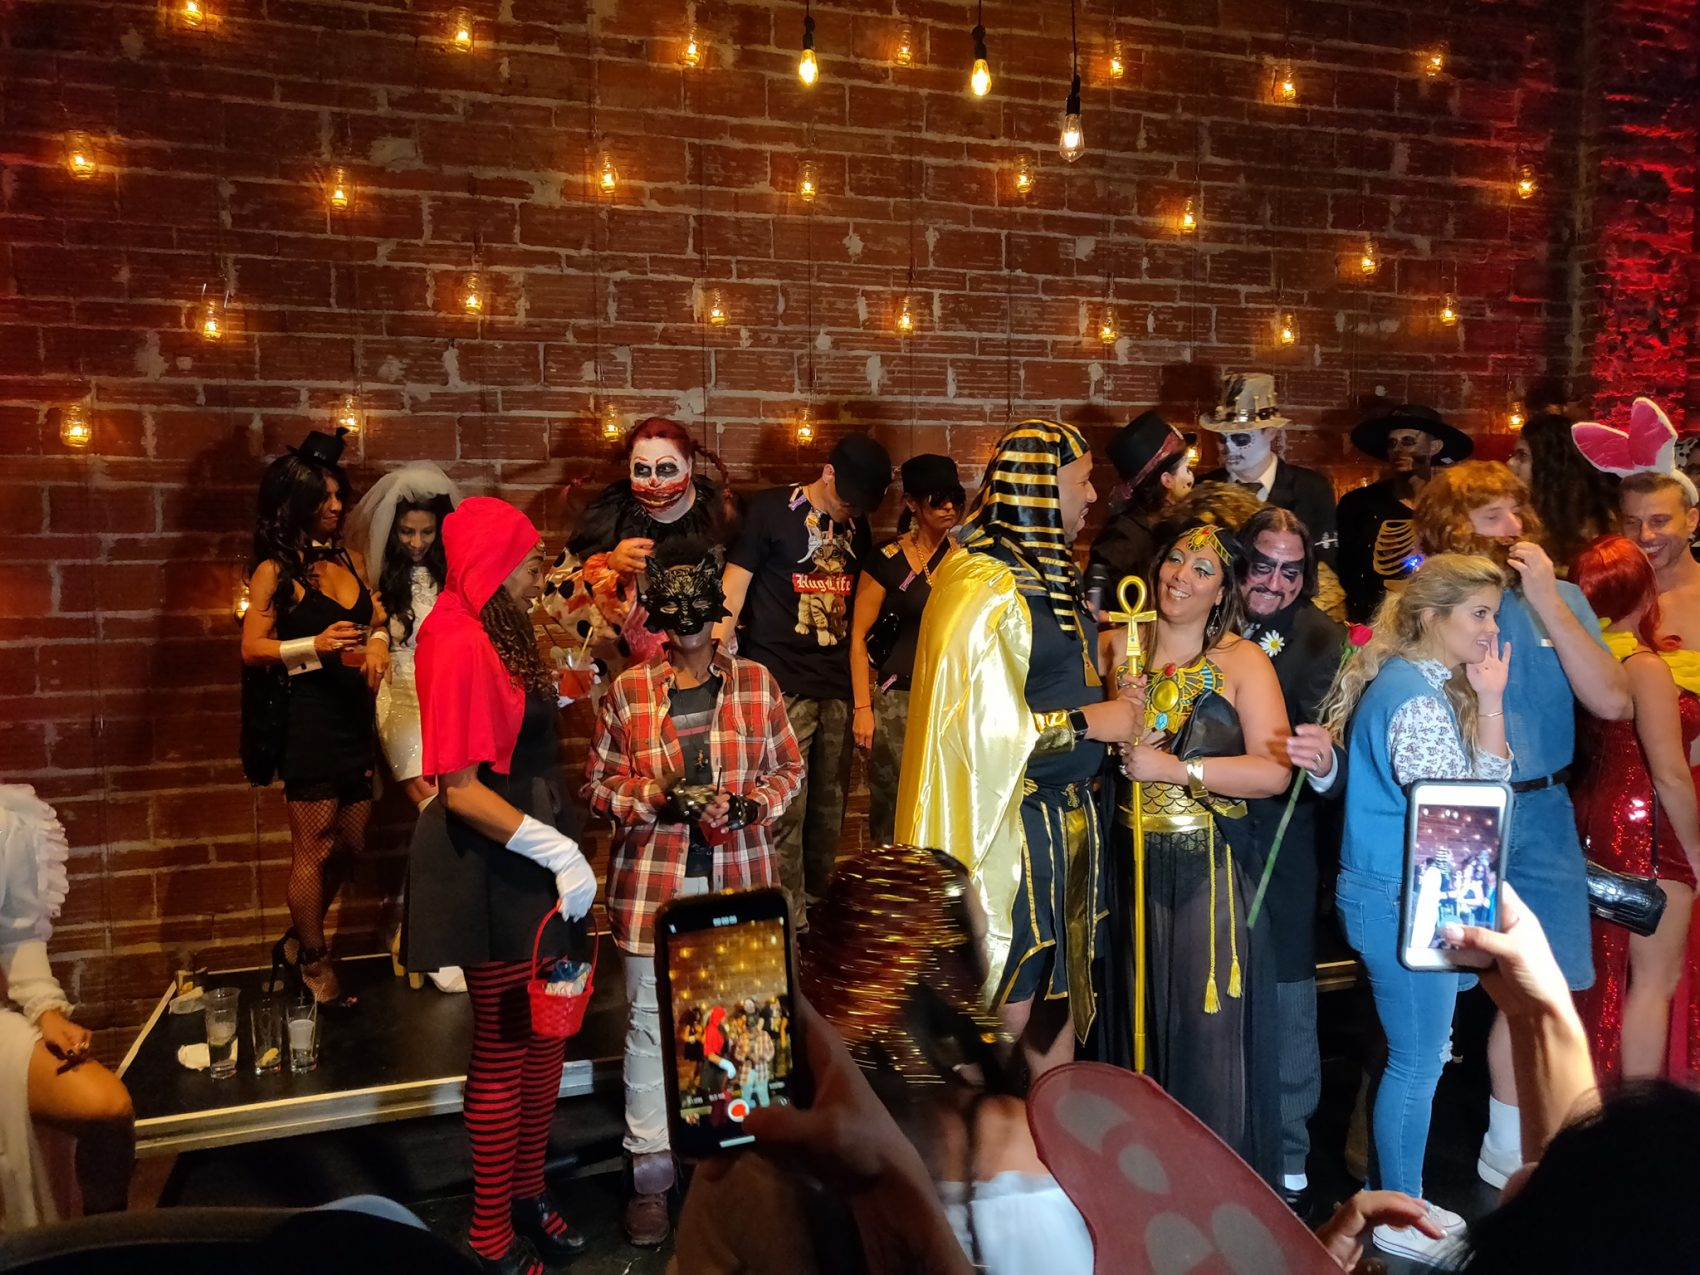 2019 10-31 Novaween 13 Costume Contest Chris Jenkins crowd